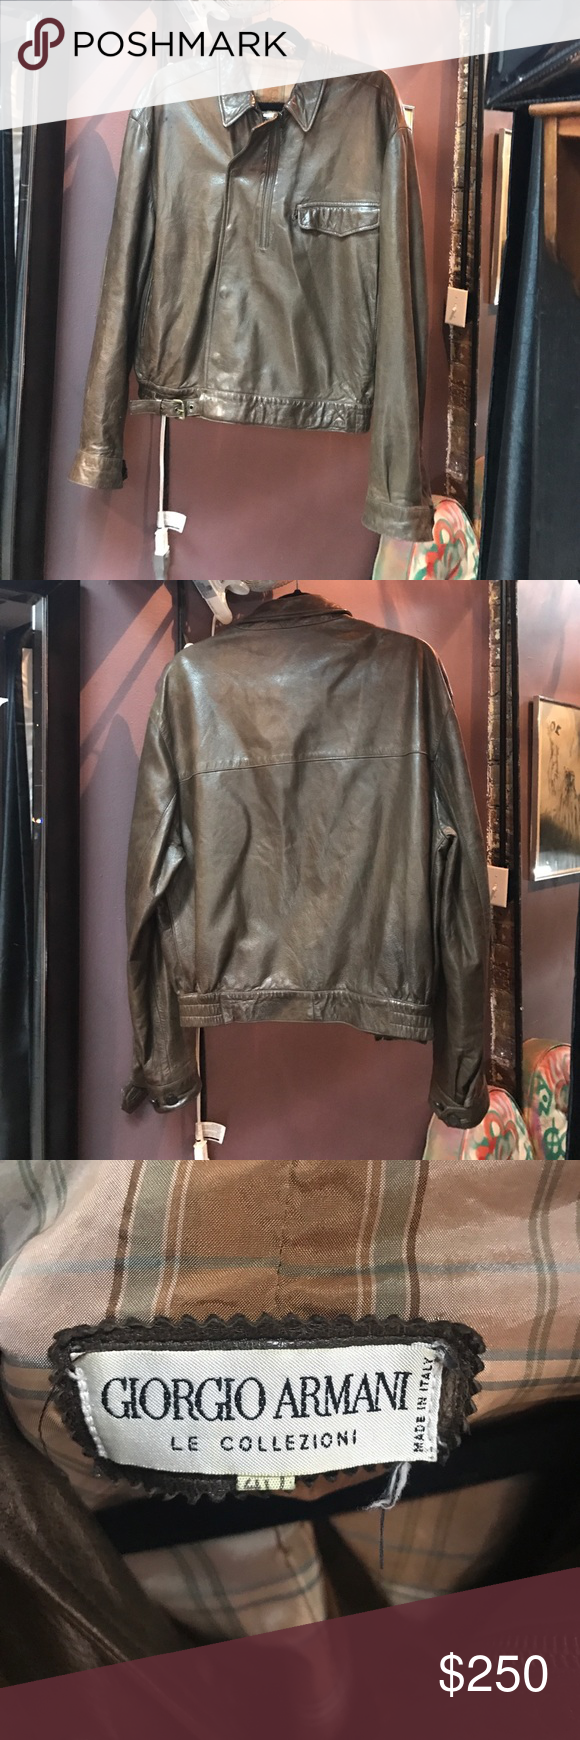 Giorgio Armani Collezioni vintage leather bomber Giorgio Armani Collezioni vintage brown buttery soft silky leather bomber with amazing unique detail. Snap button closure with waist belt and off center half zip. One front zip pocket with flap and cook satin plaid lining. This jacket is in excellent condition. No stains or tears in lining/pockets. There are a few small nicks in leather but I think I'm gonna have repaired and will update. Amazing and one of a kind! Giorgio Armani Jackets…